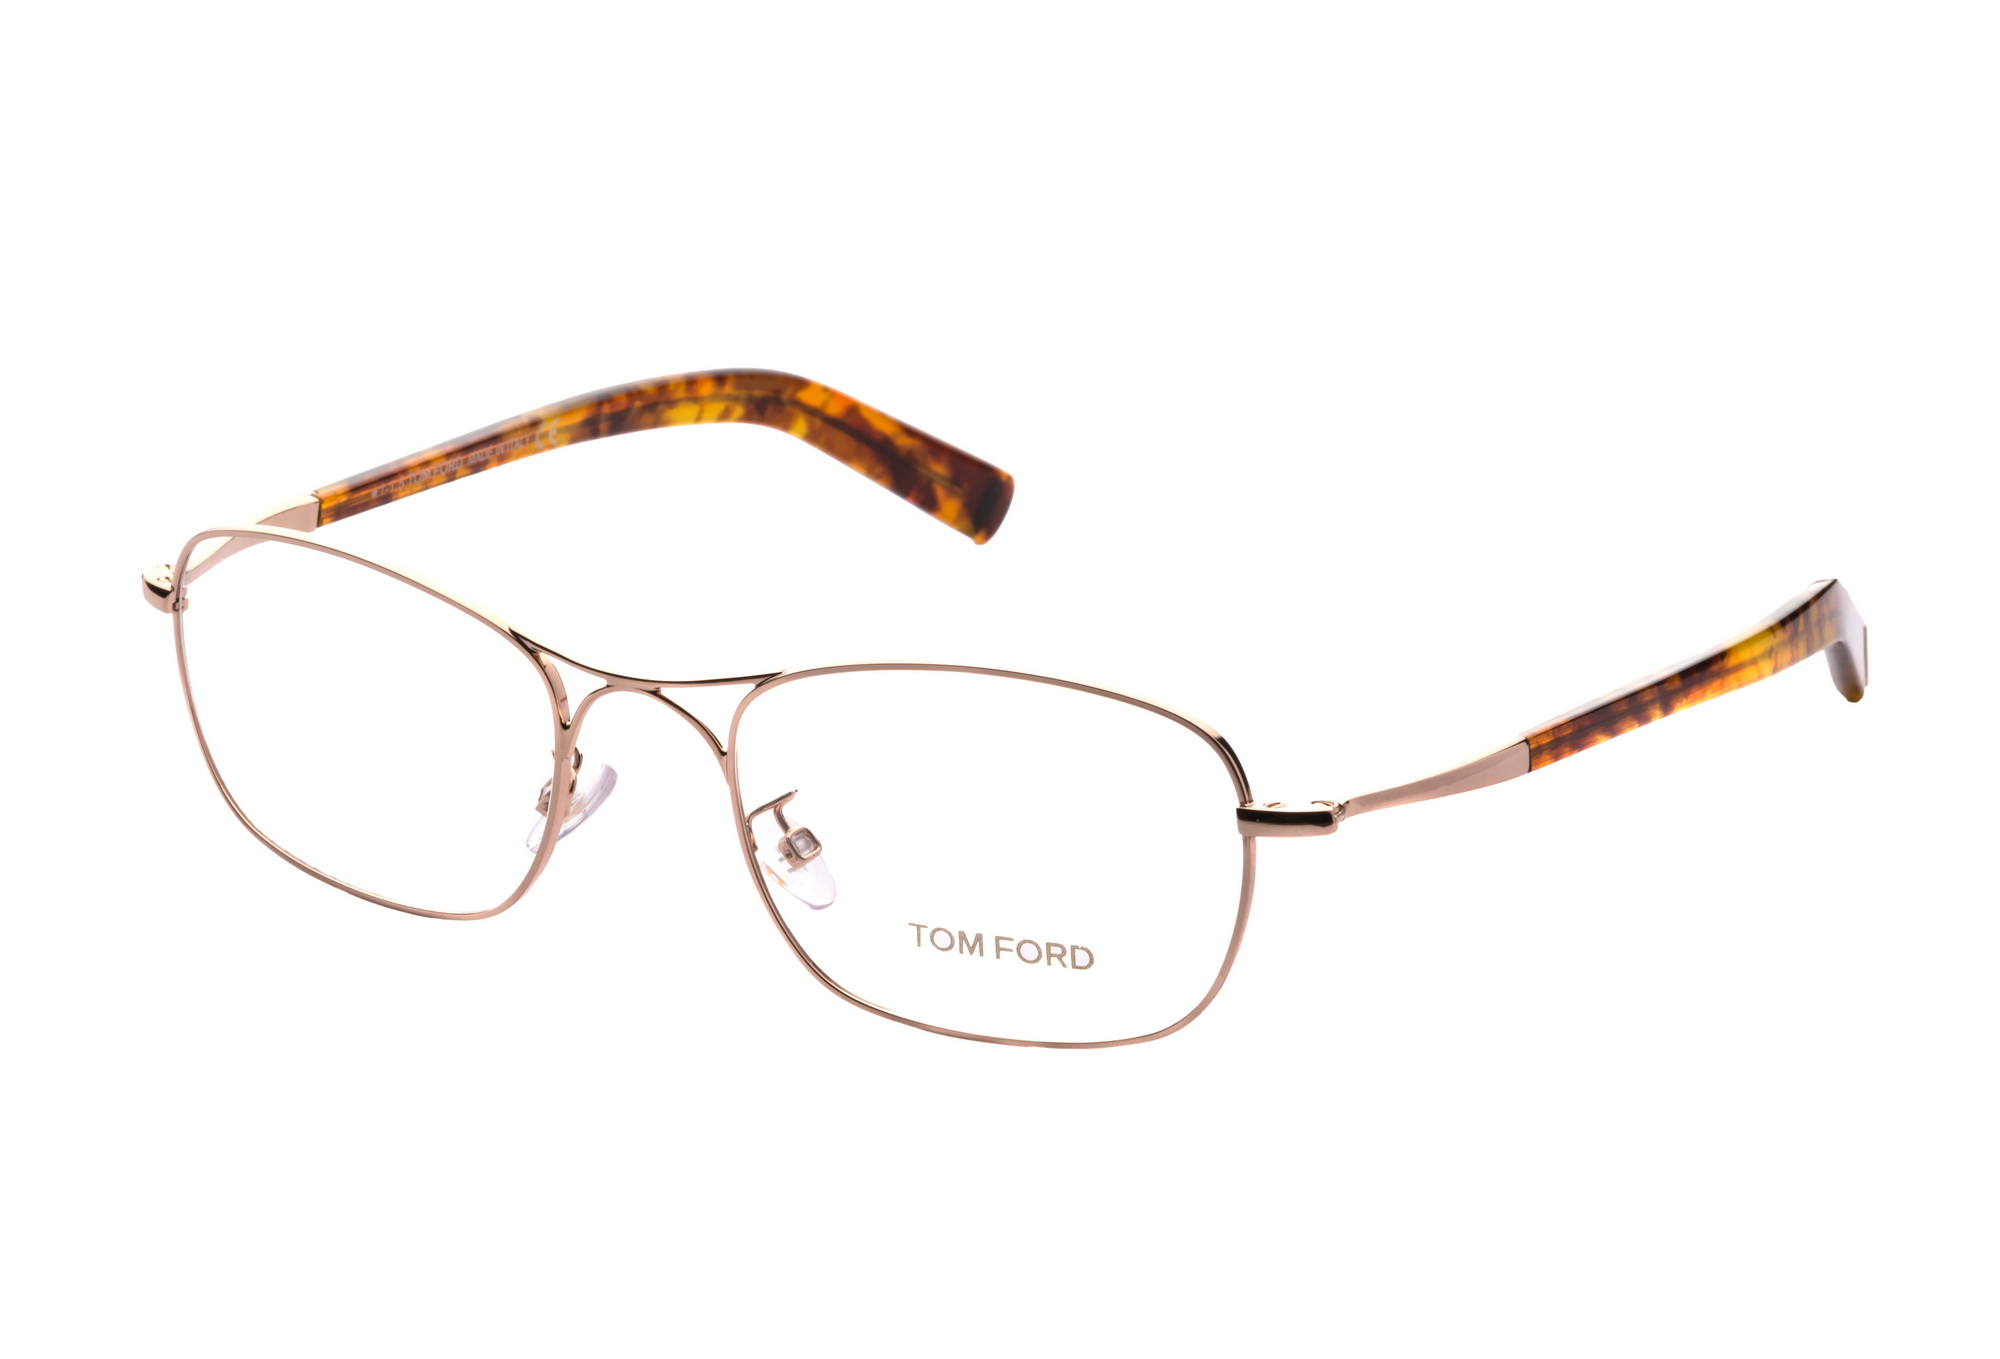 Tom Ford TF3004